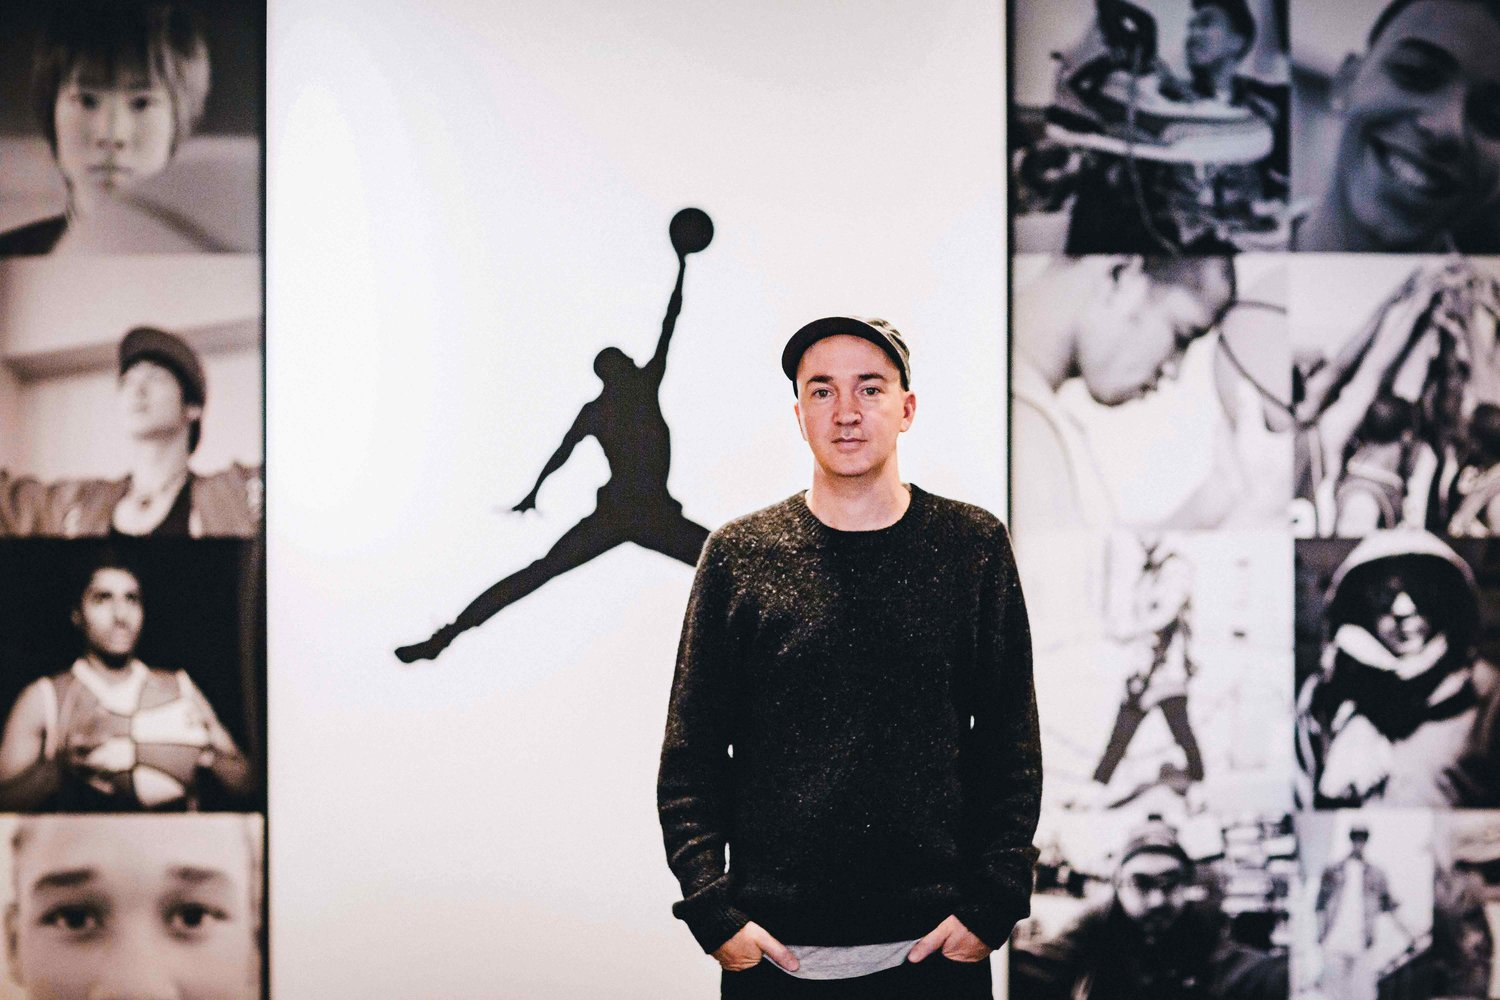 2d5aa12b8a6 JORDAN X KAWS BEHIND THE SCENES OF JORDAN BRAND S COLLABORATION WITH THE  GENERATION-DEFINING ARTIST — The Sole Truth